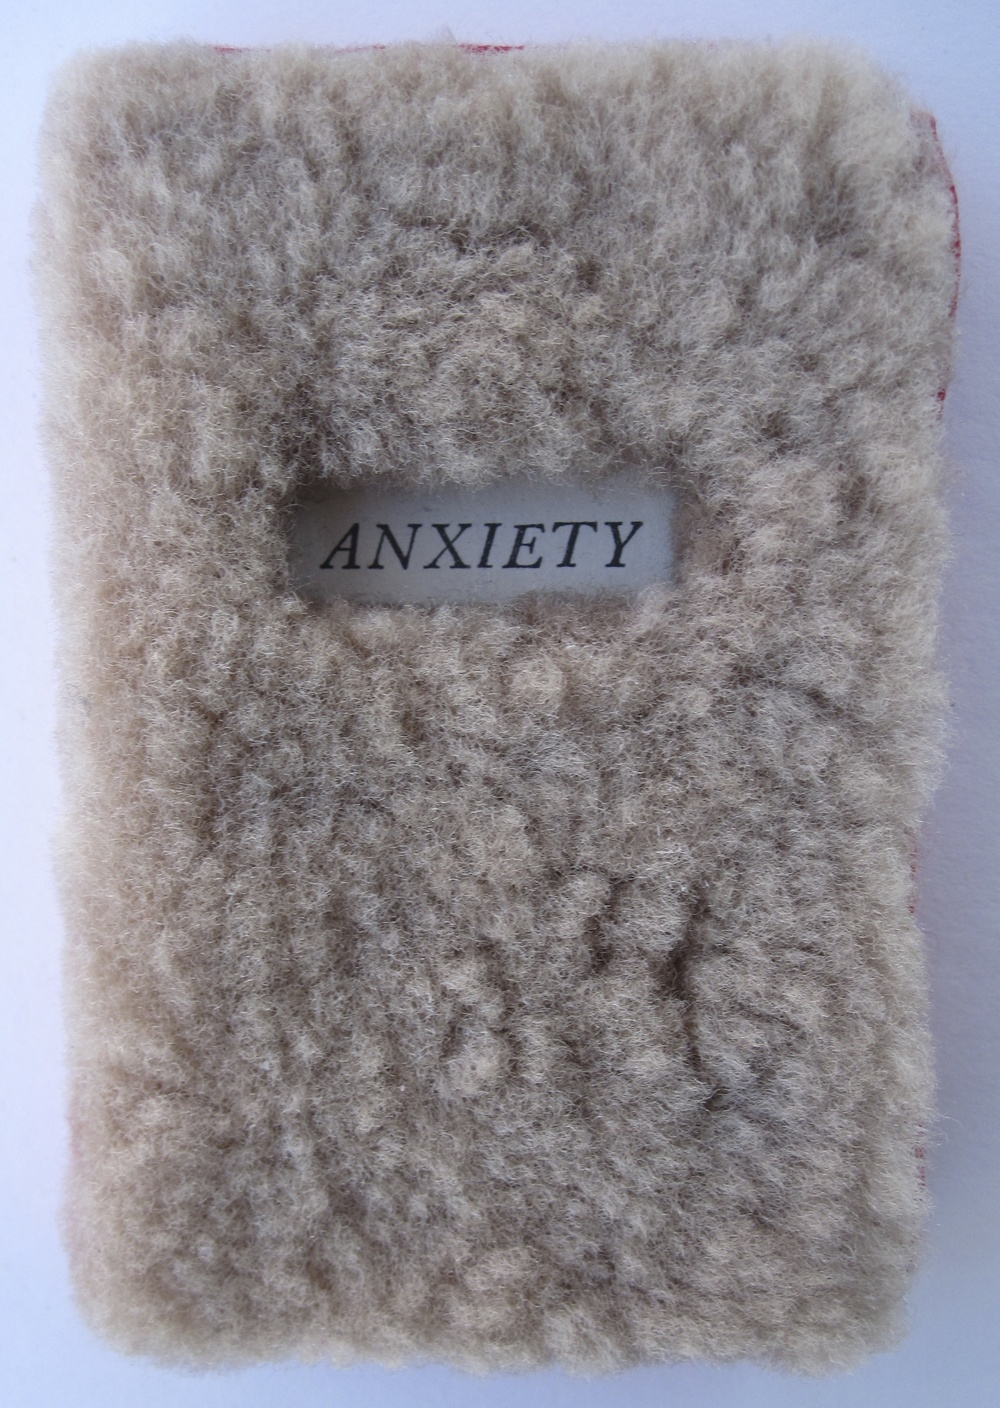 Anxiety in Fur © 2012/2014 Maksymilian Kapelanski